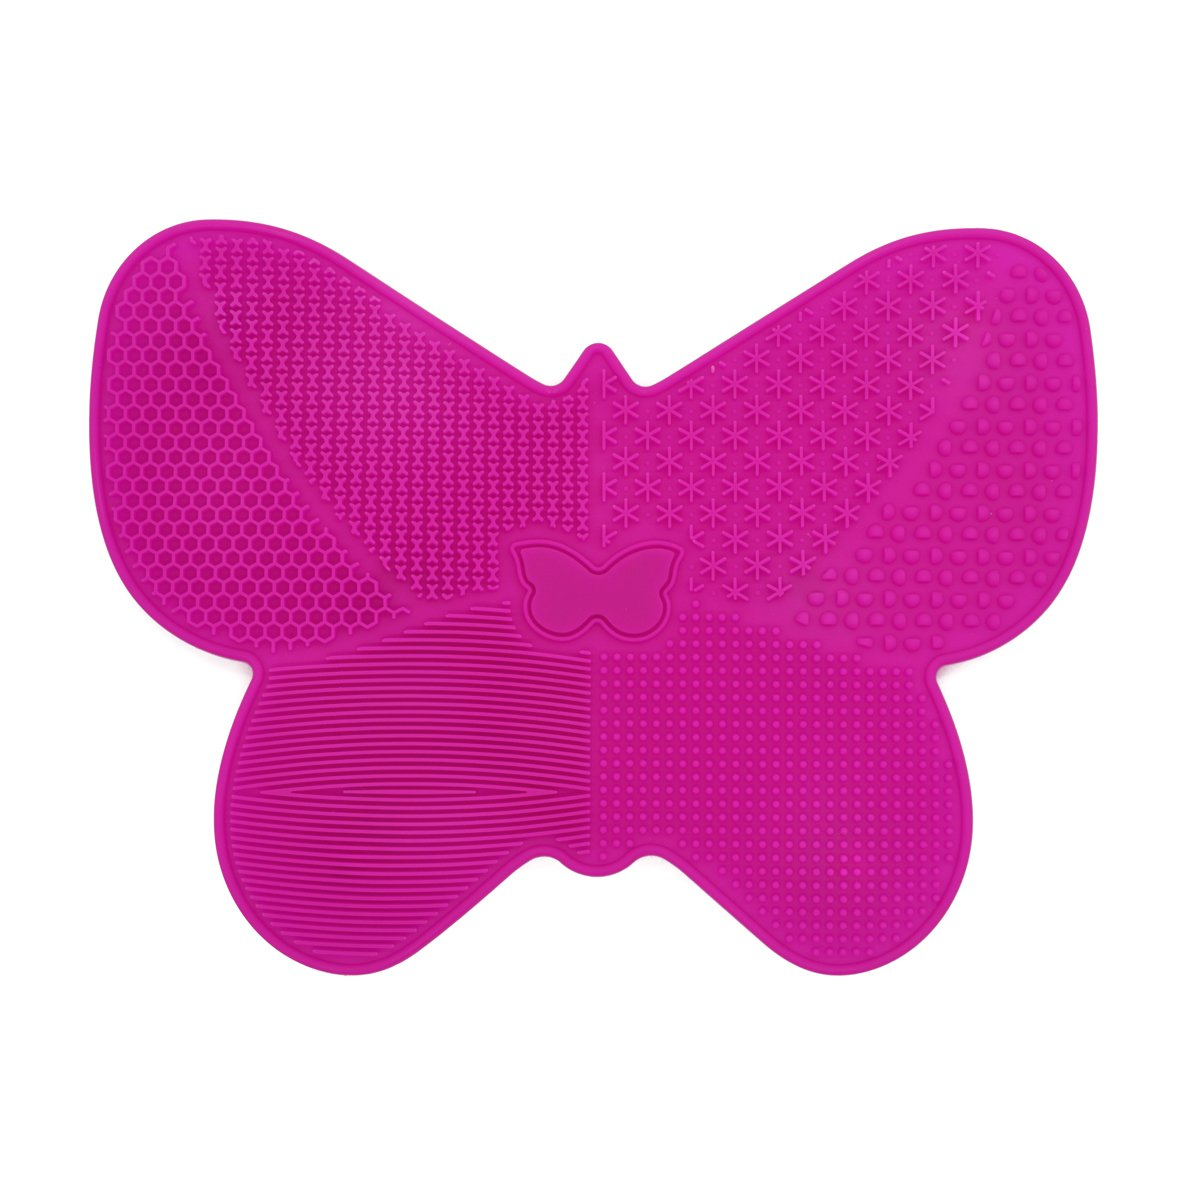 Makeup Brushes Cleaning Mat, Butterfly Shape Makeup Brush Cleaner Pad with Suction Cup Rose Red Gobuying